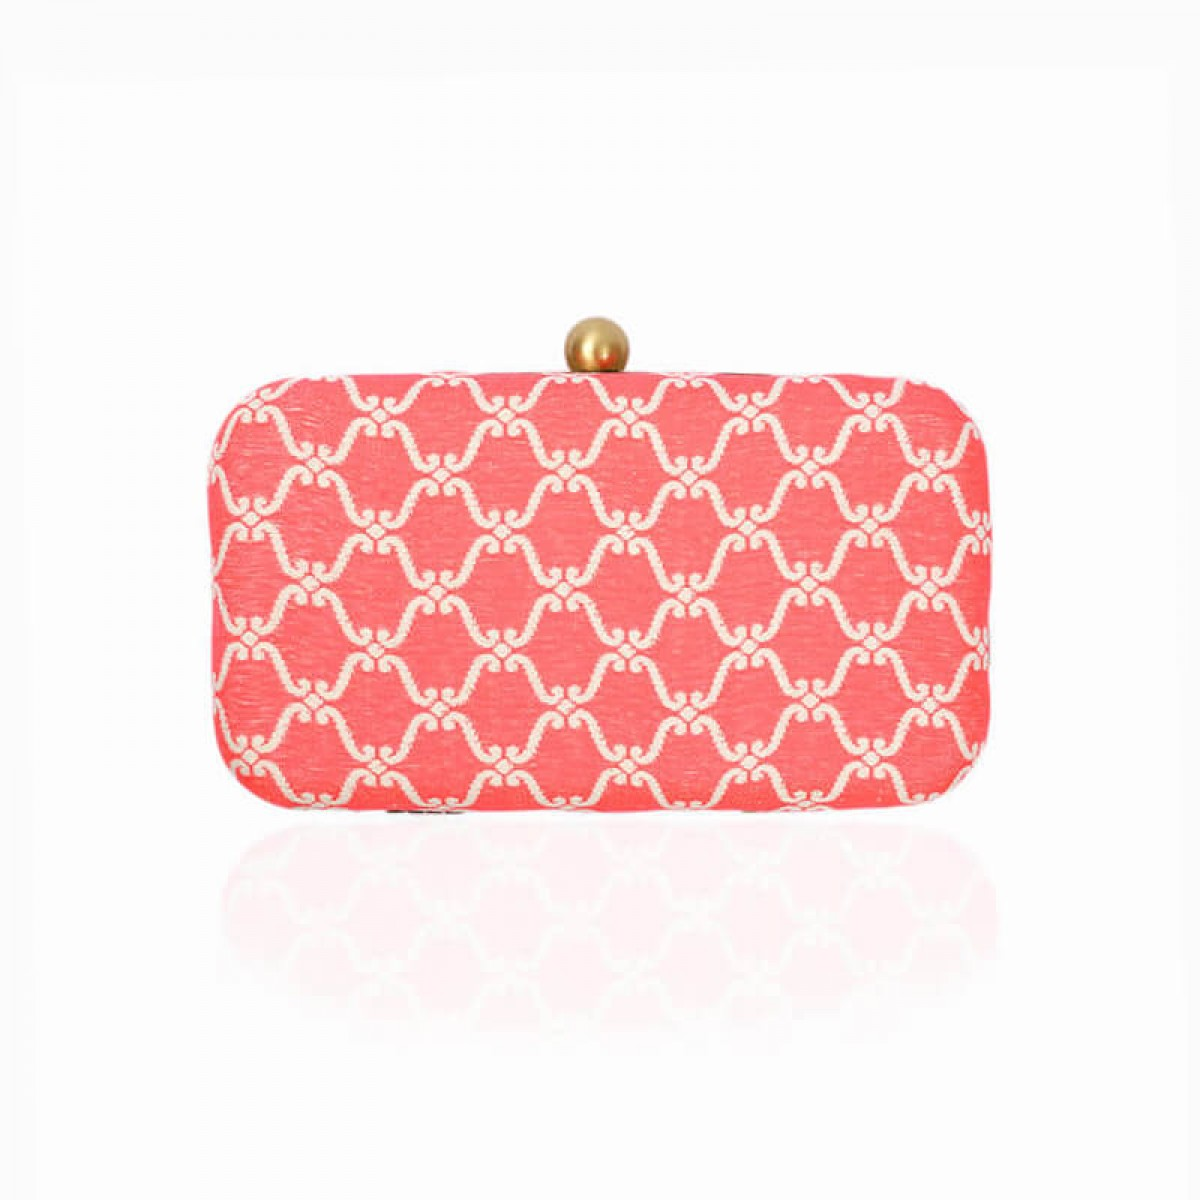 Evening Pattern Clutch Bag - Pink